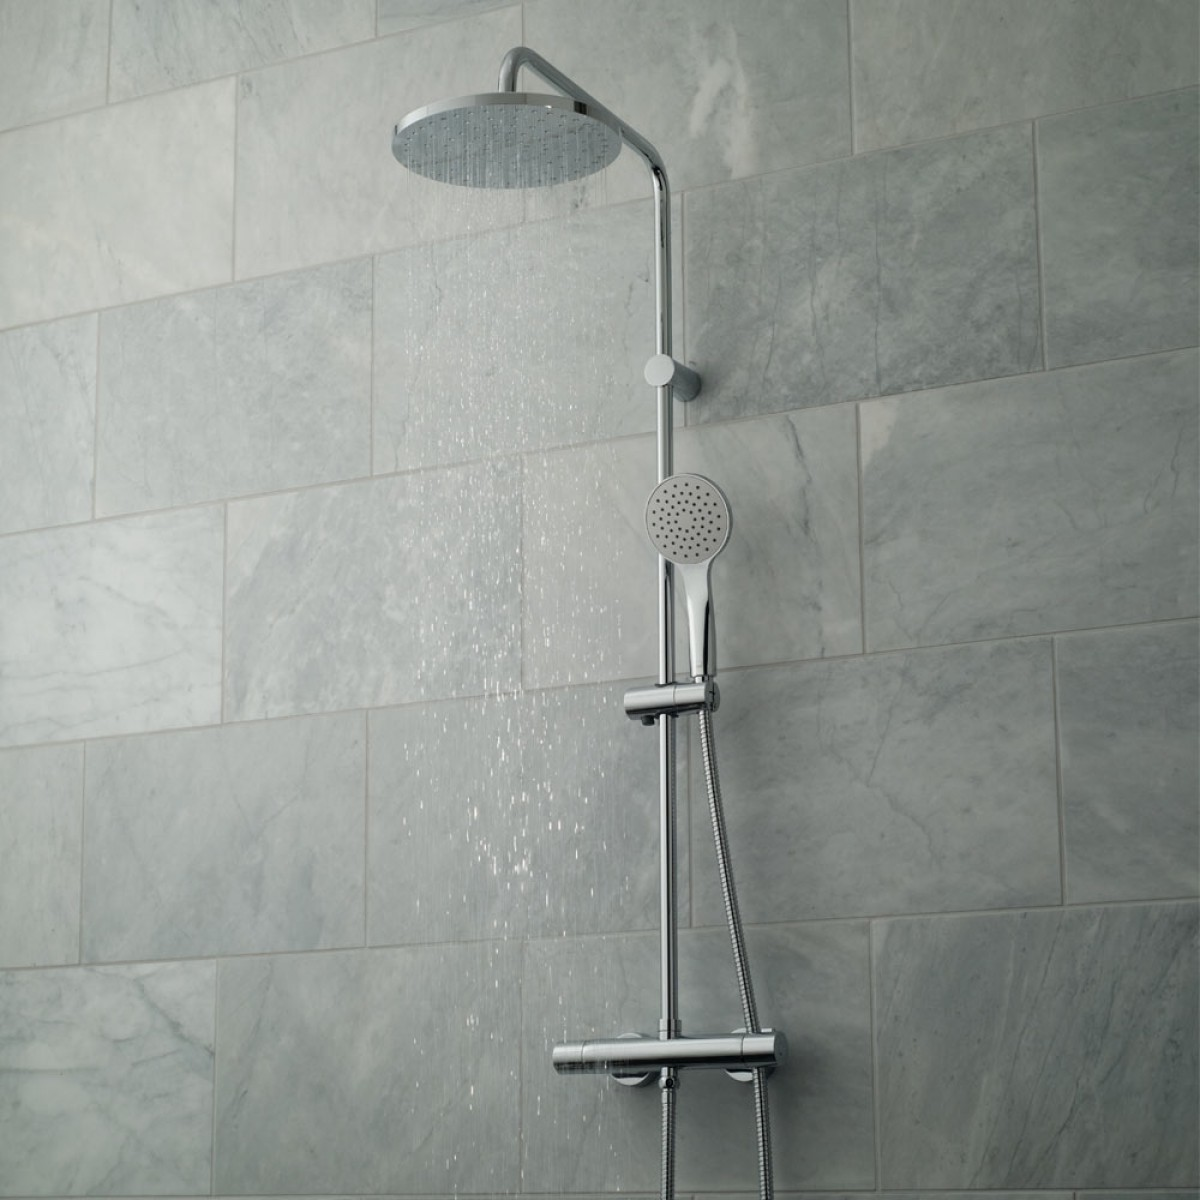 Exposed Shower Valve Kits